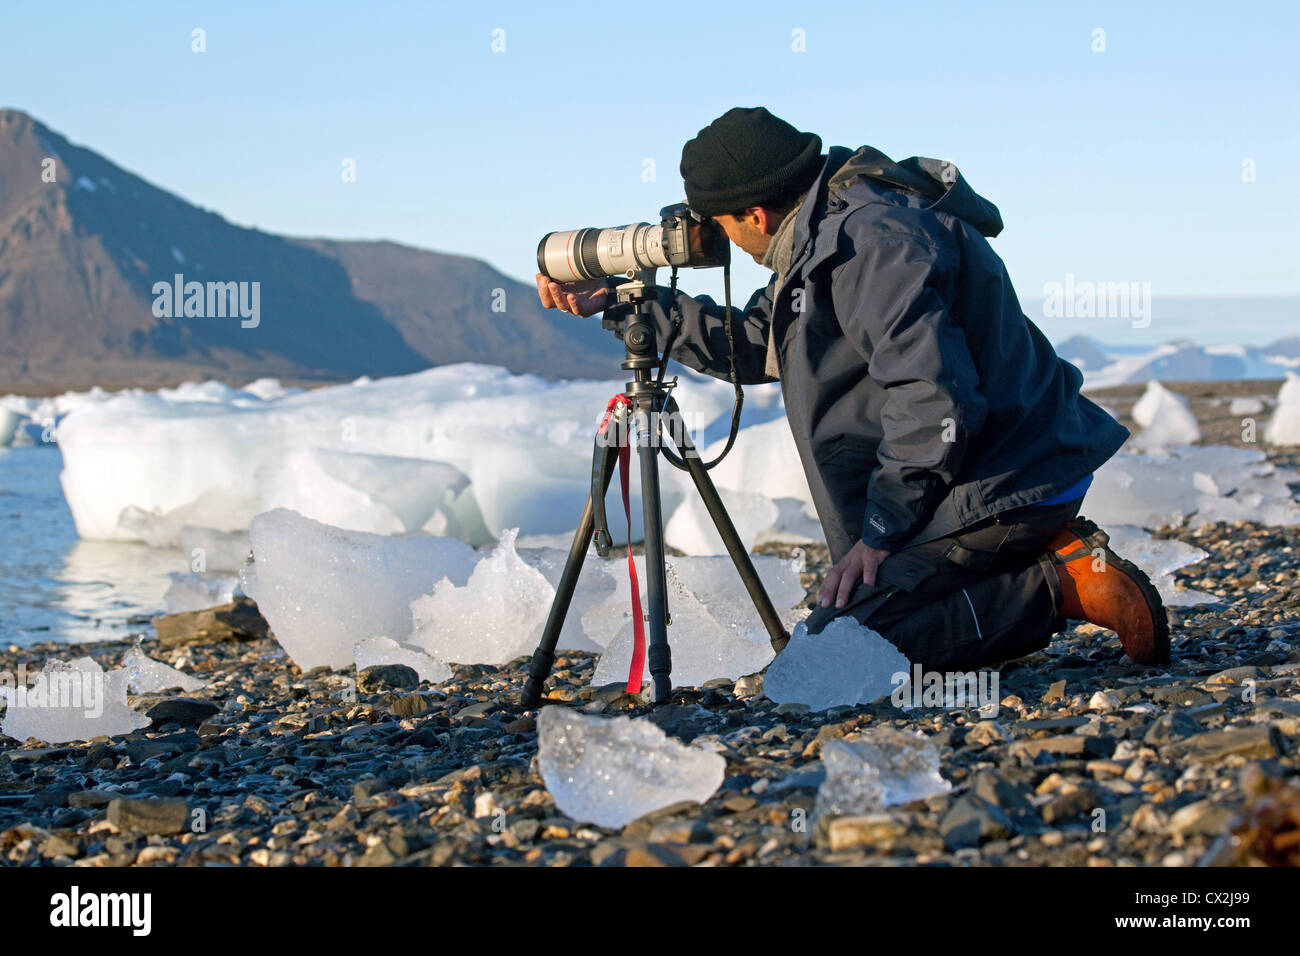 Wildlife / nature photographer taking pictures with long telephoto lens on tripod in the Arctic at Svalbard, Spitsbergen, - Stock Image